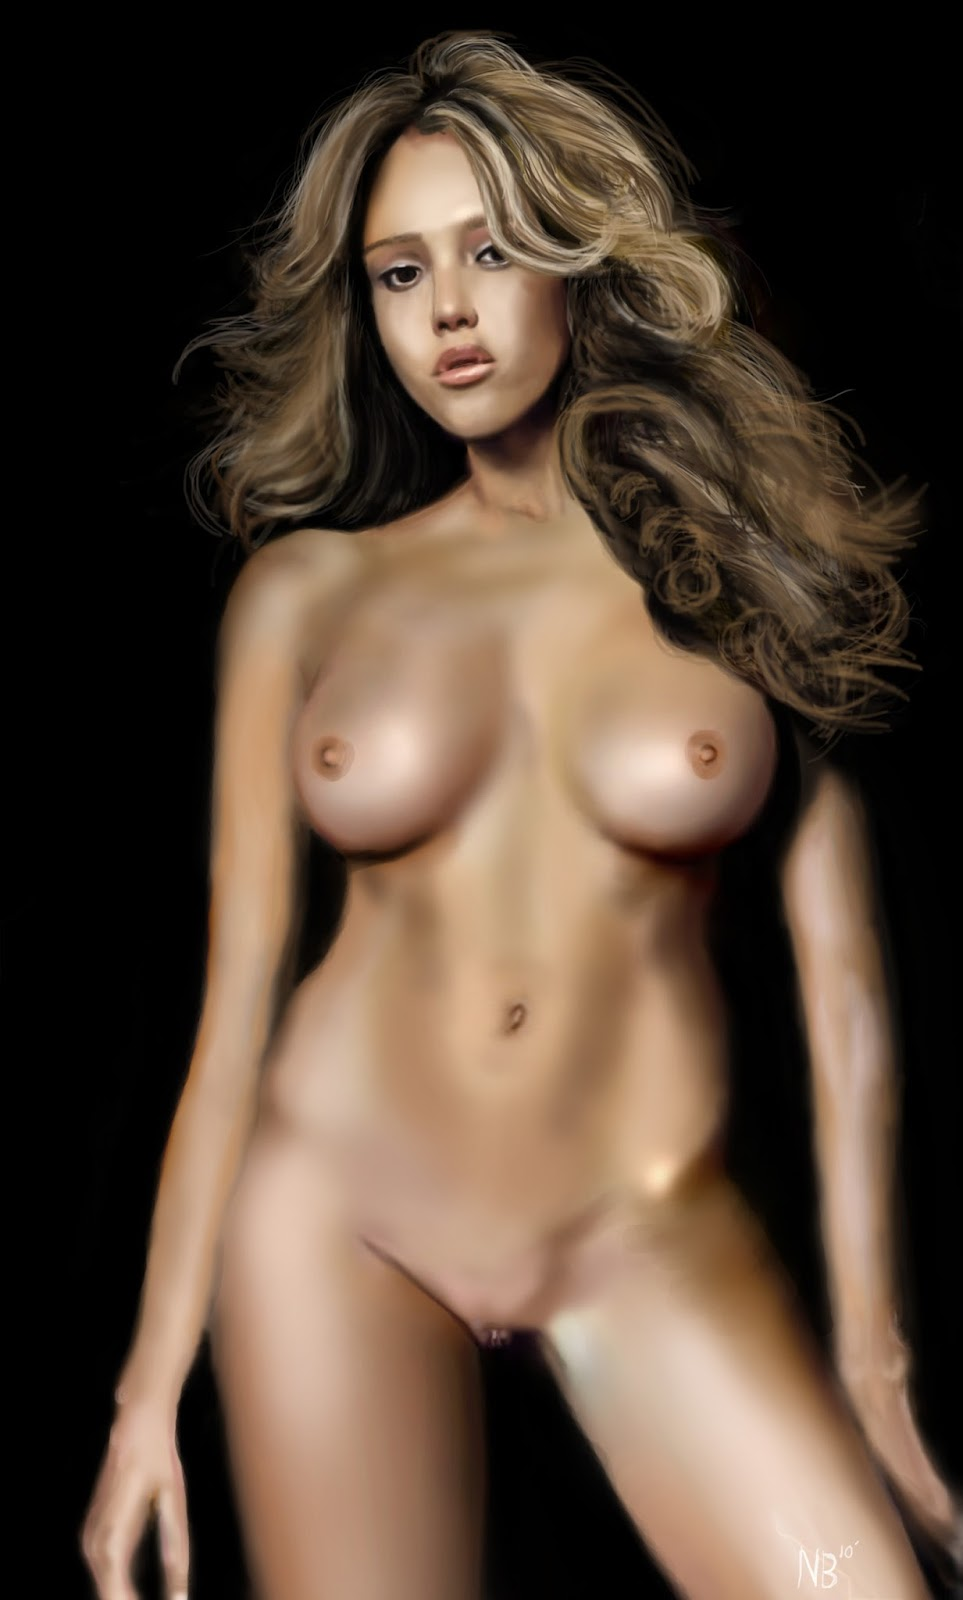 jessica alba naked photo shoot